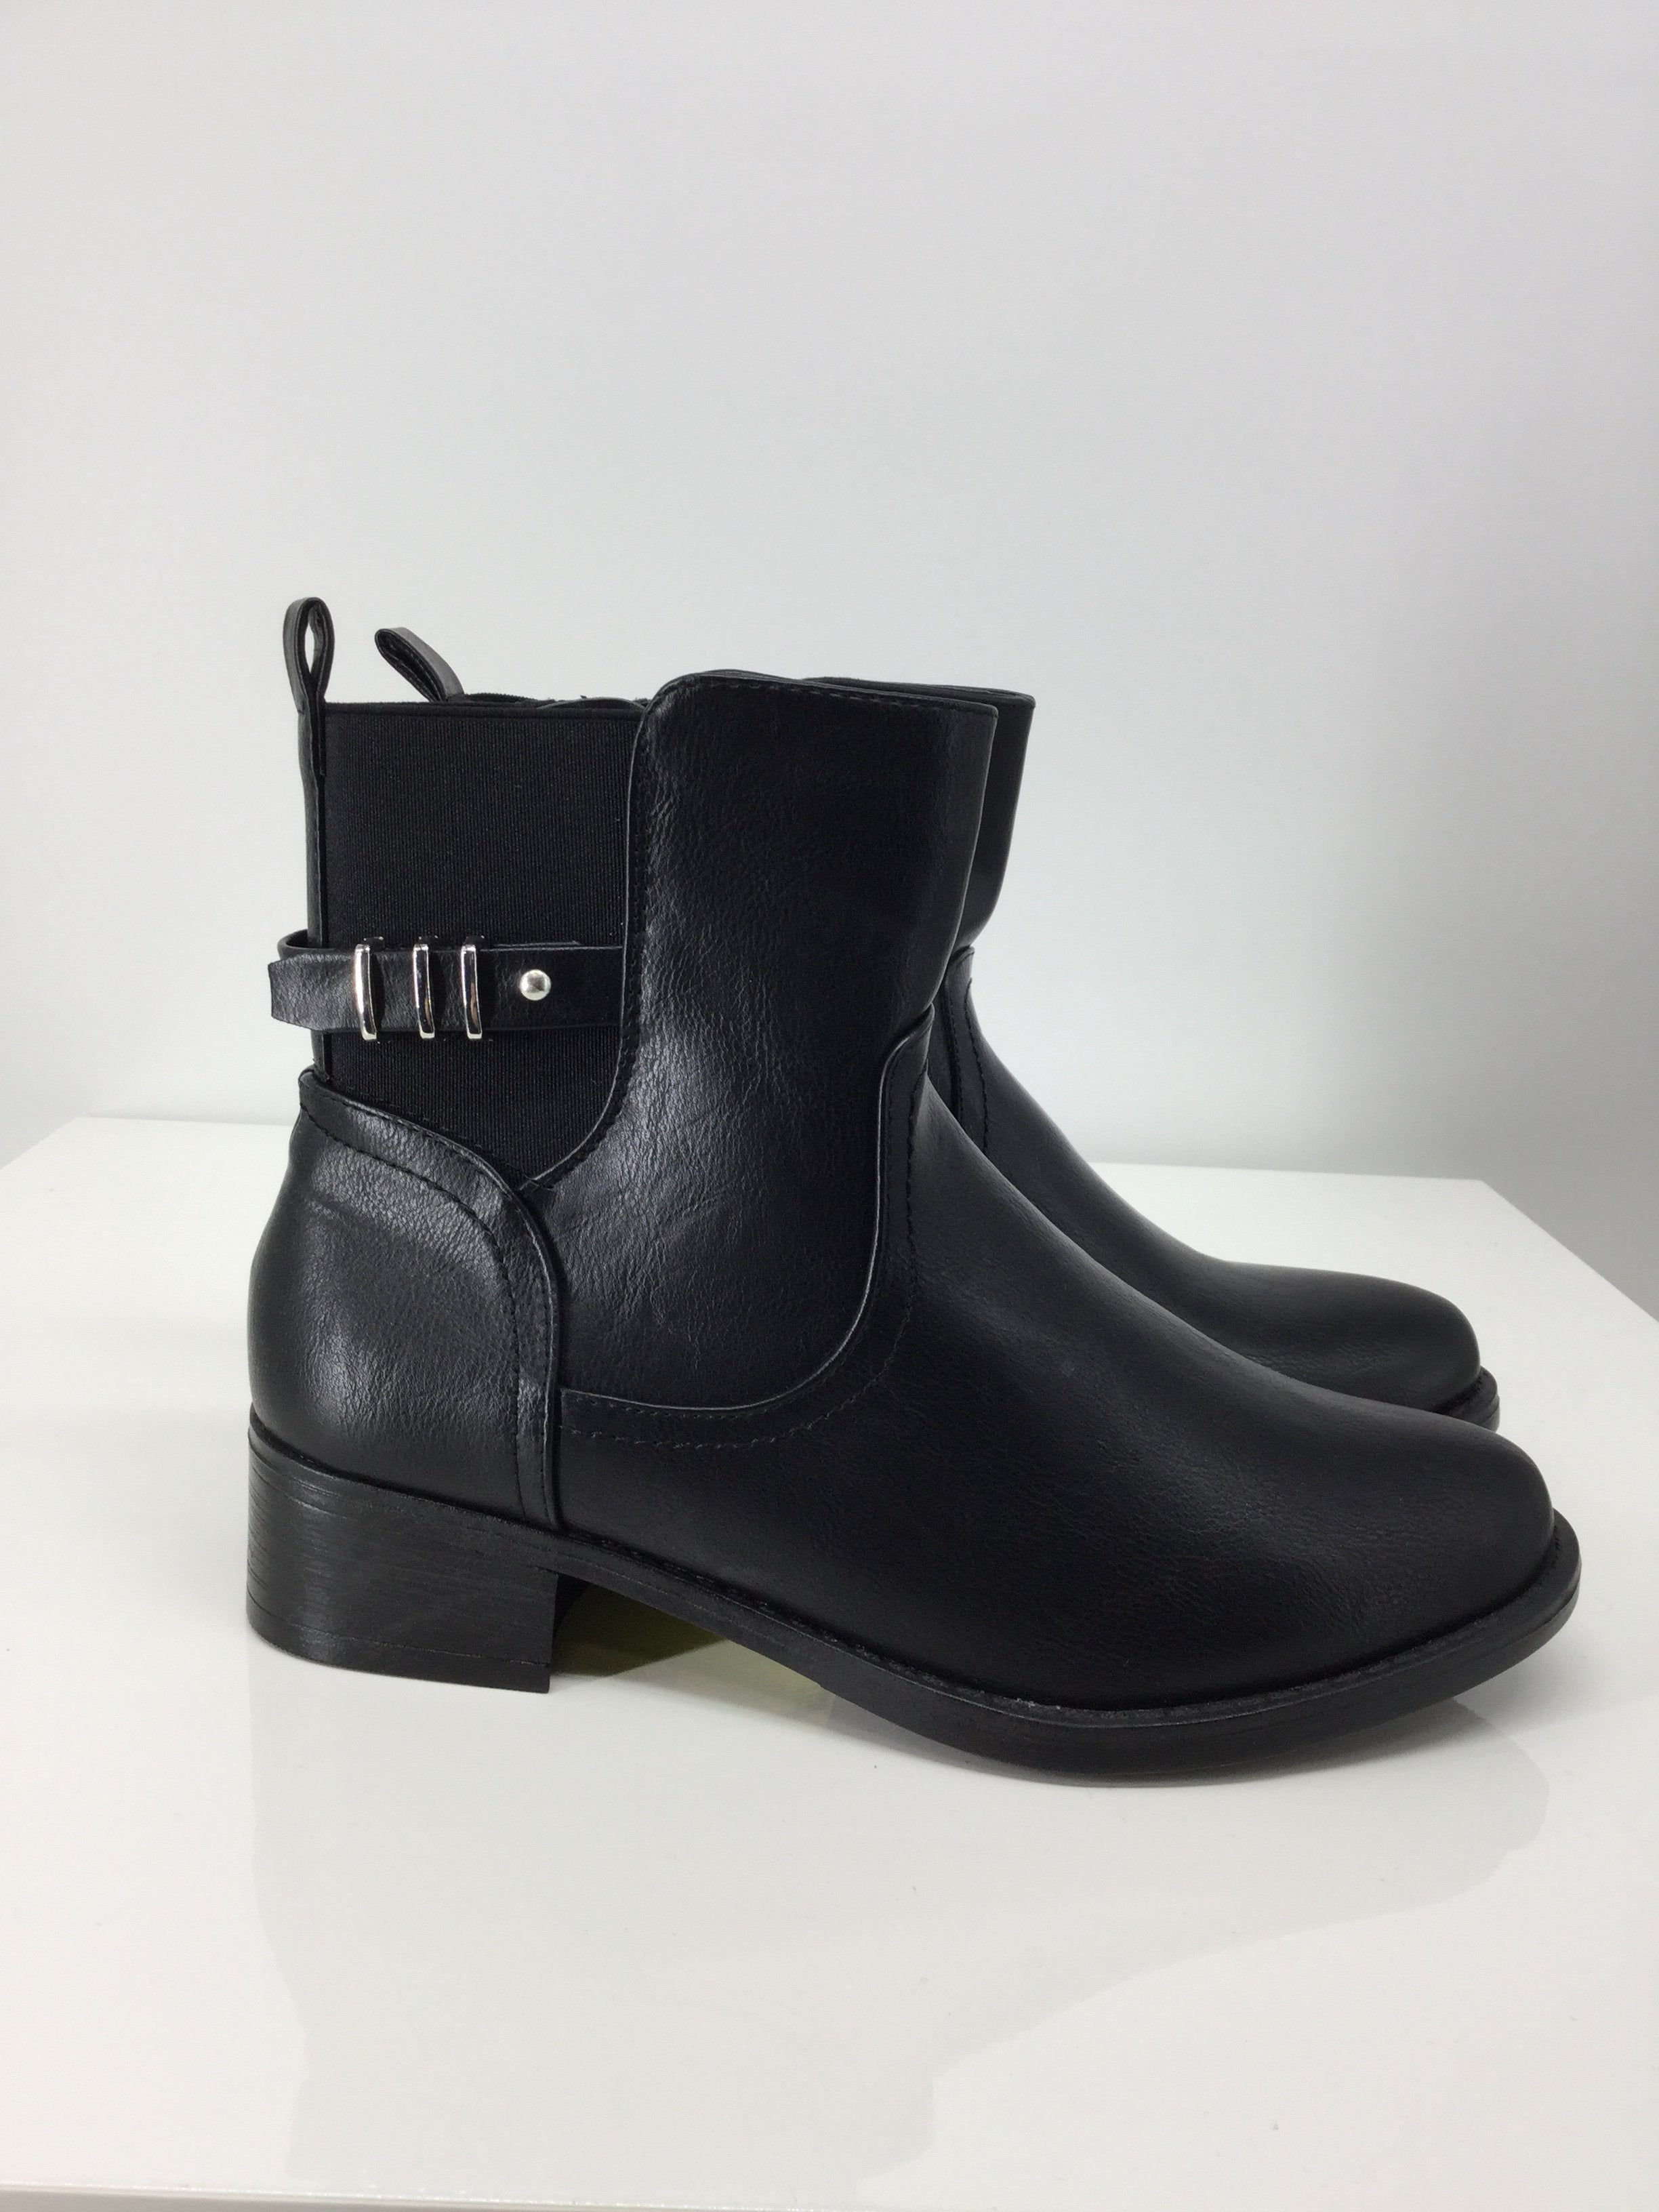 Primary Photo - brand: catherines , style: boots ankle , color: black , size: 8 , sku: 129-4748-4120